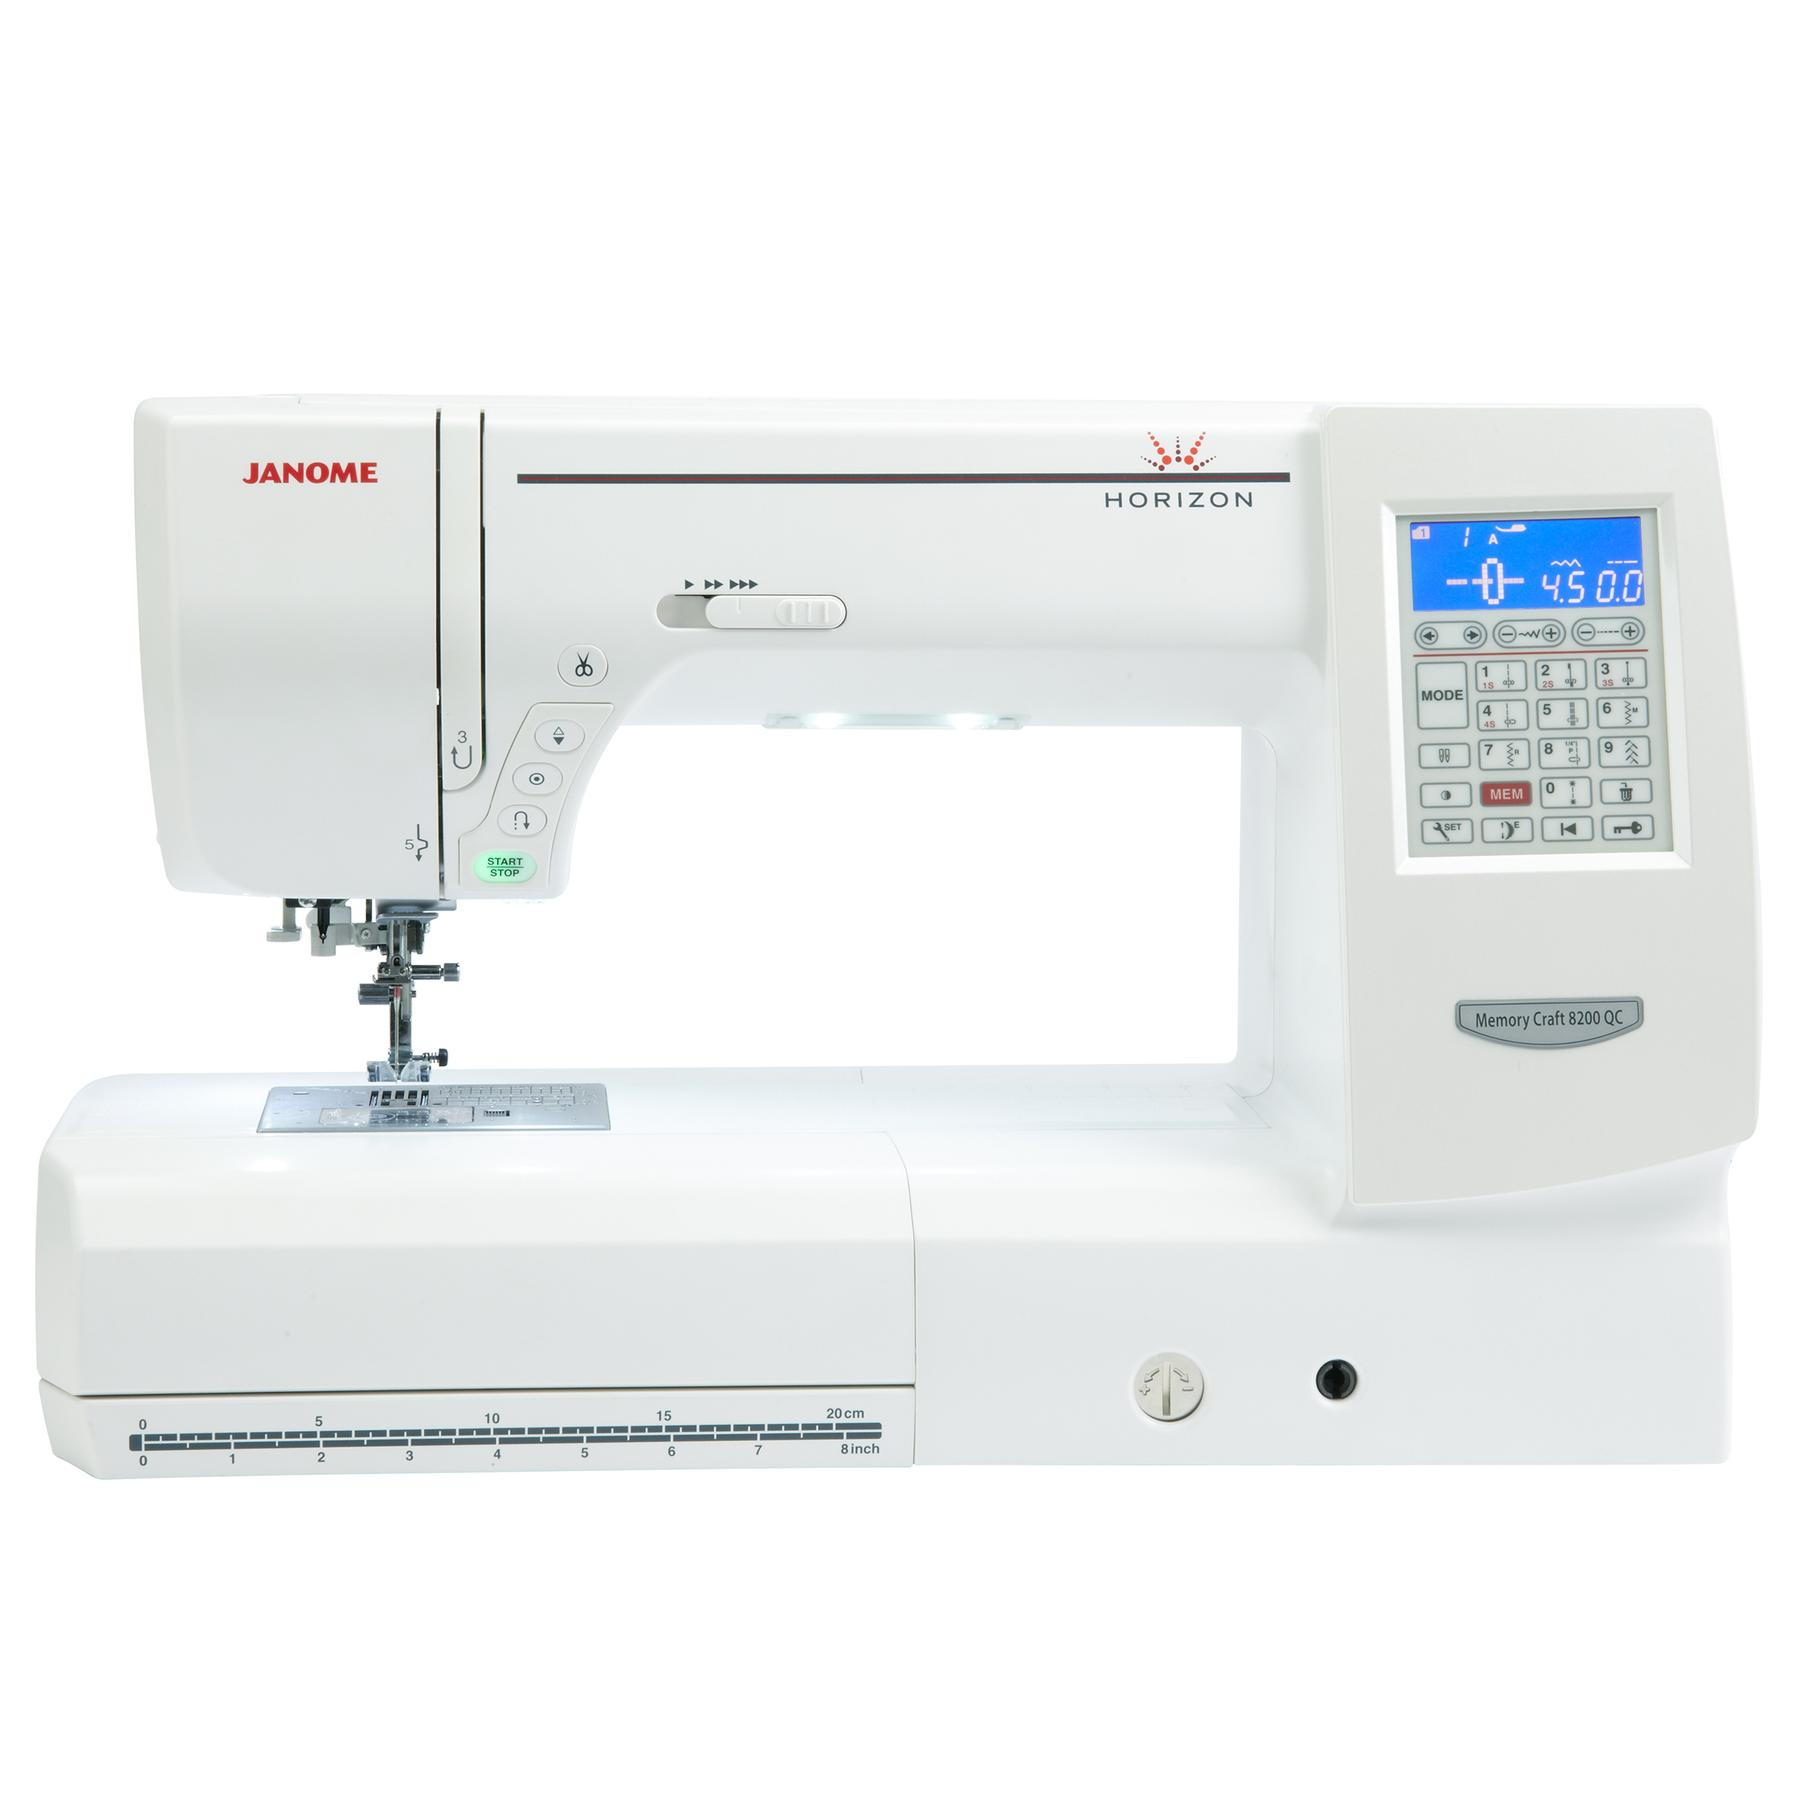 Janome Horizon 8200qcp Frank Nutt Sewing Machines Ltd